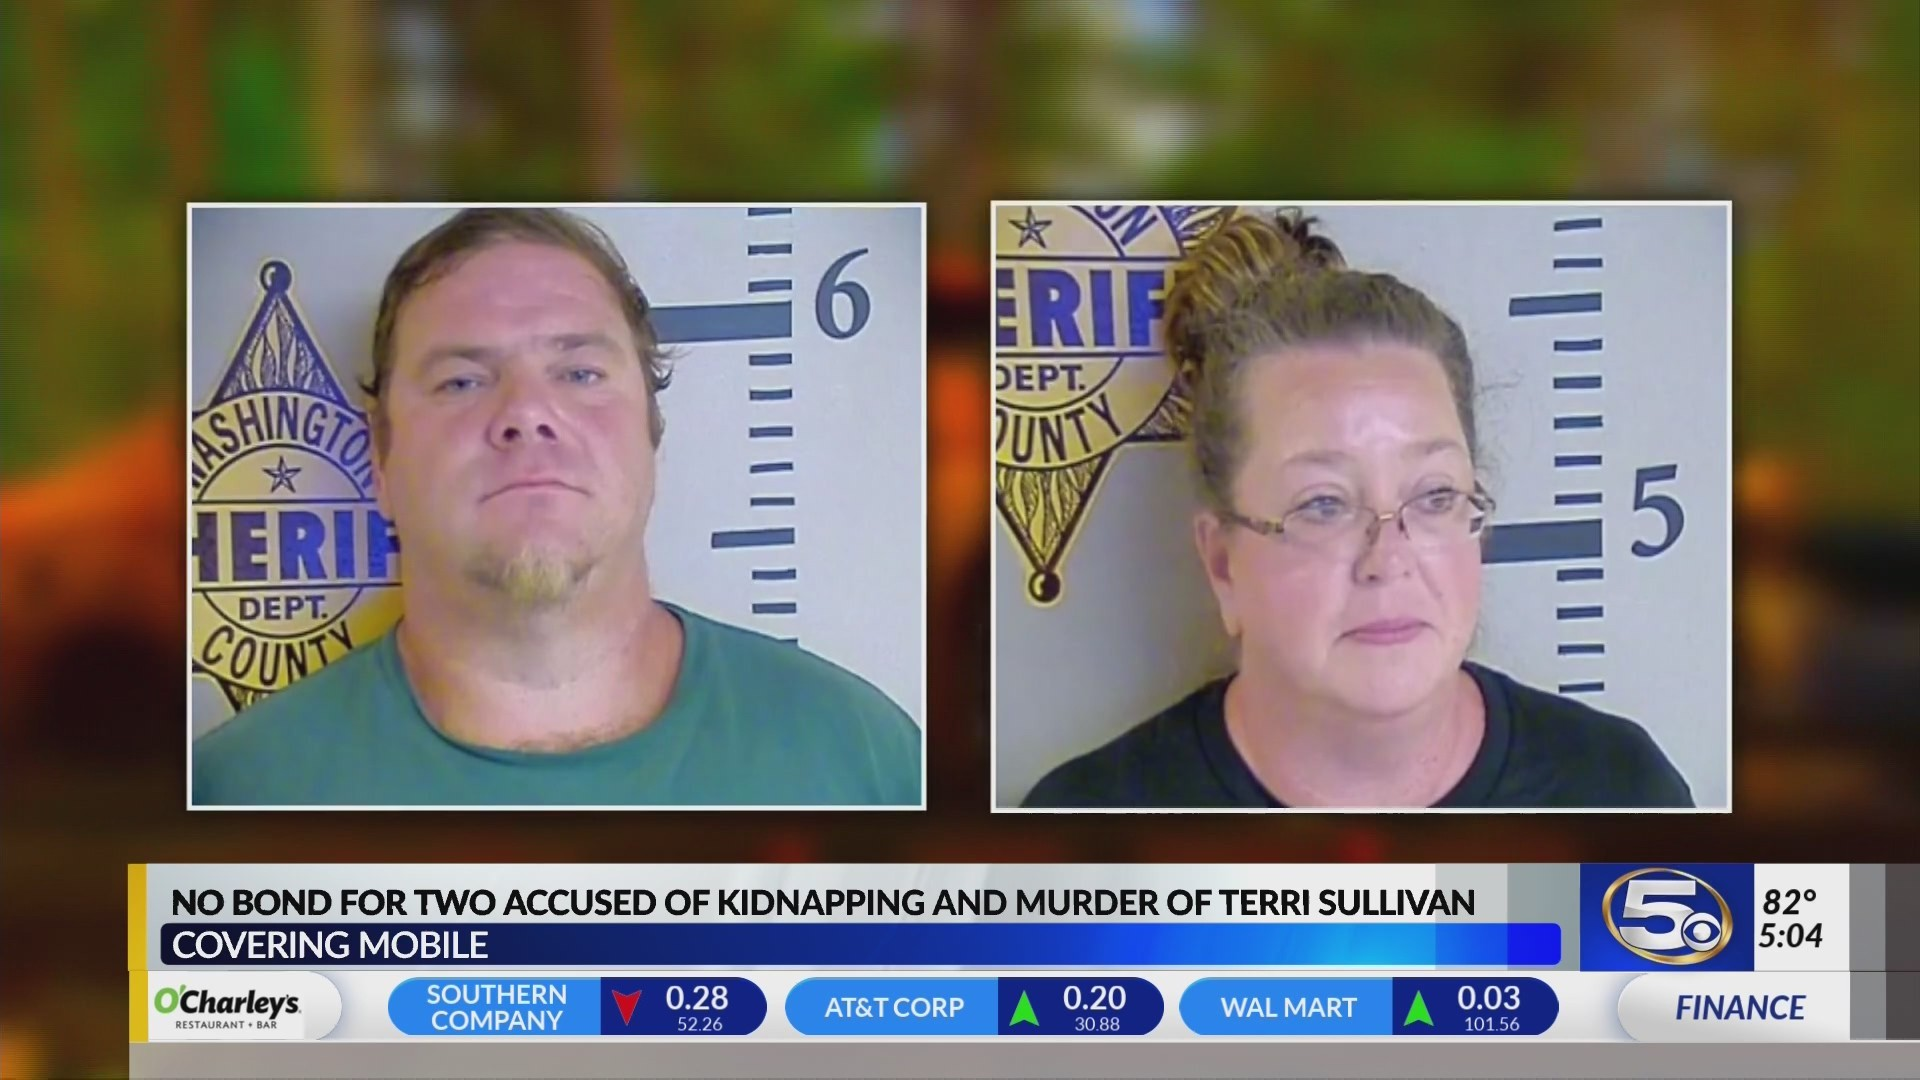 VIDEO: Bond denied for two suspects accused of kidnapping and killing Terri Sullivan